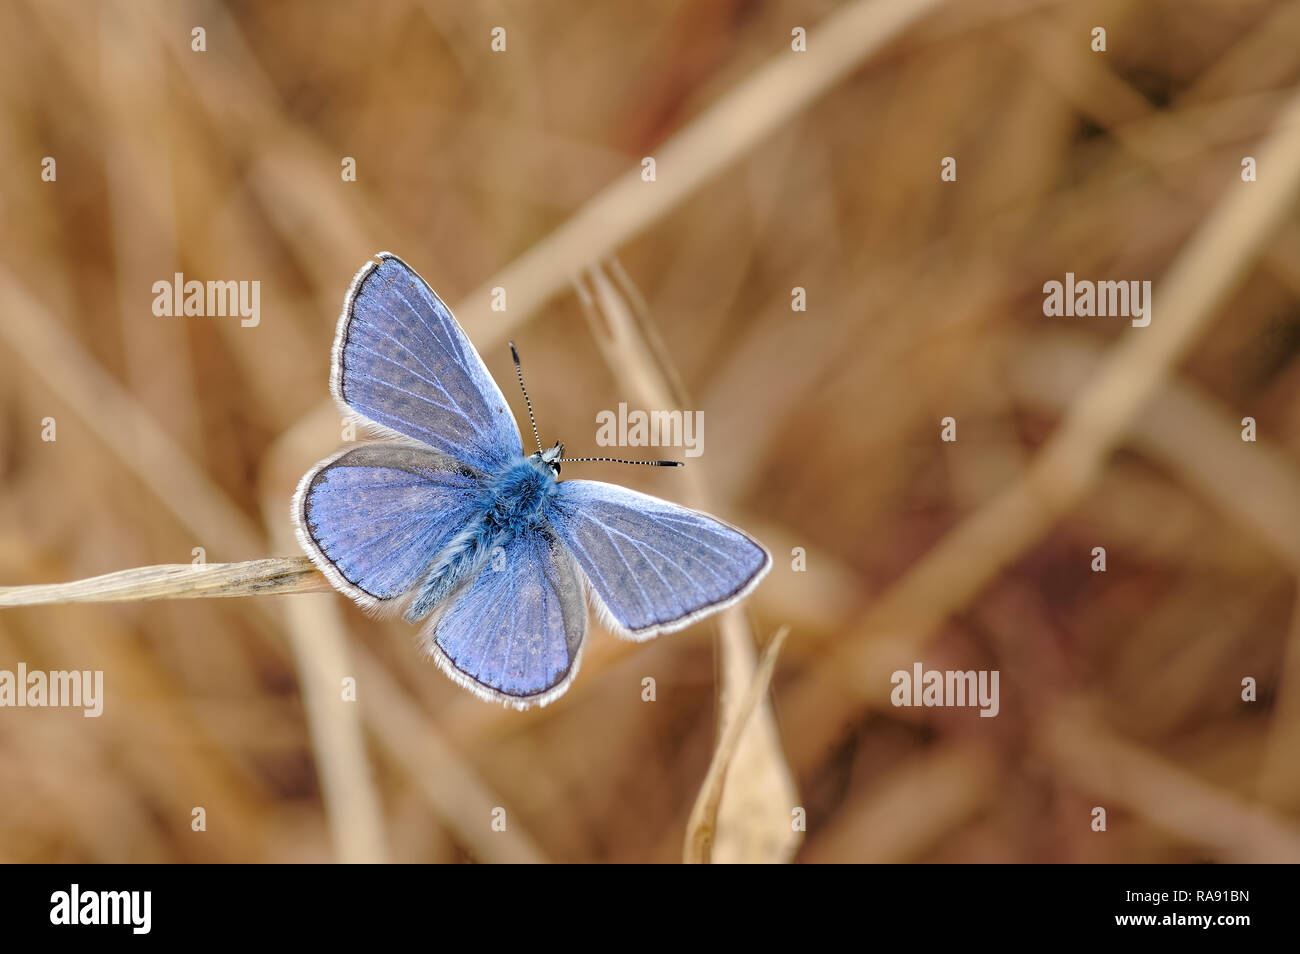 This is the Common Blue Butterfly, Polyommatus icarus. As its name suggests this is one of the commonest butterflies in the UK. - Stock Image